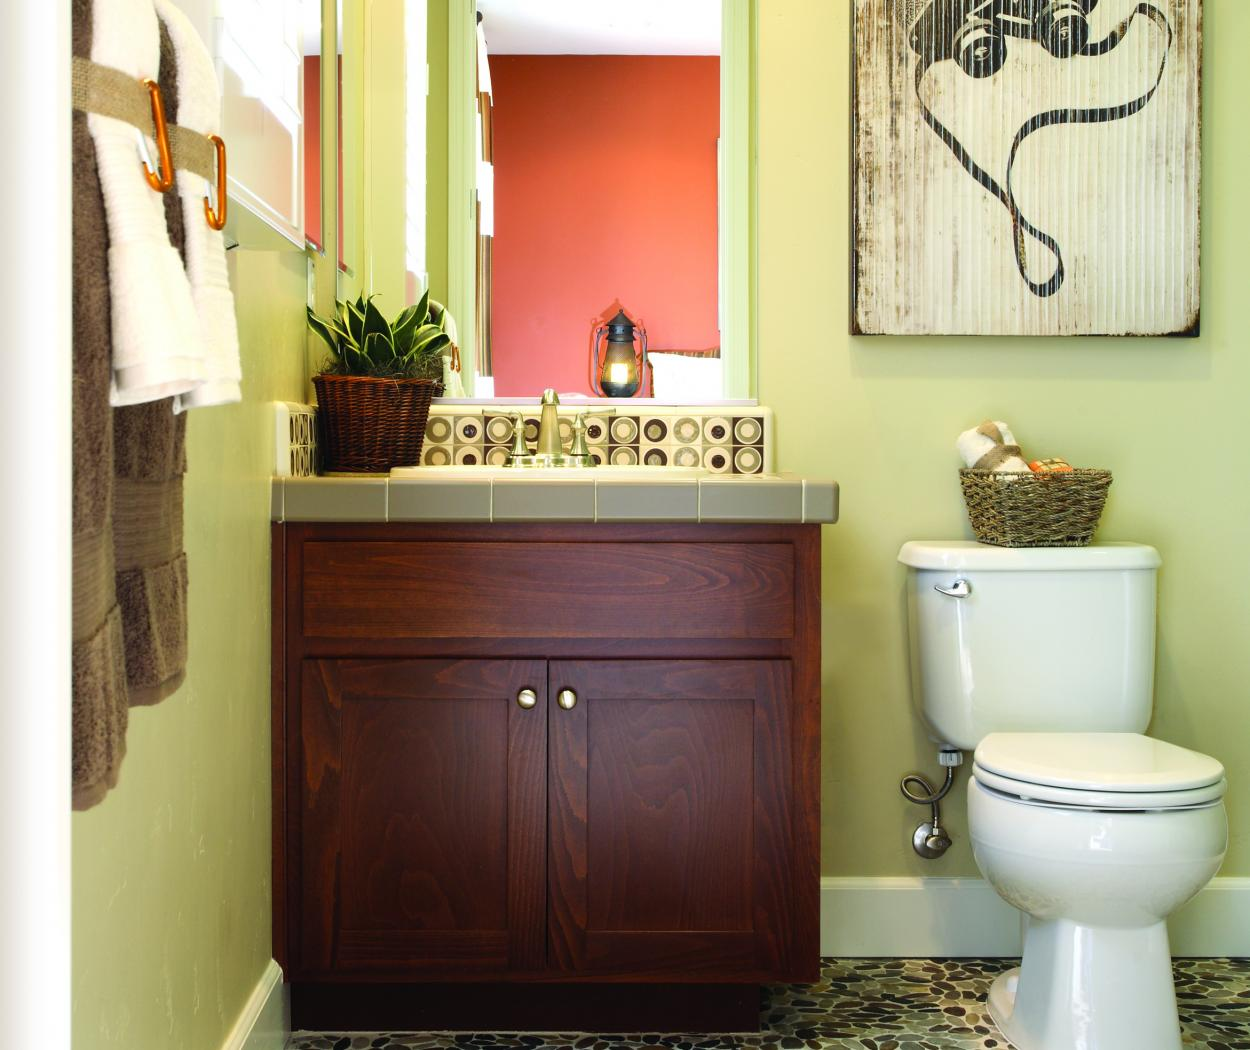 Beautiful Stained, Shaker Style Bathroom Vanity with Polished Brass Hardware